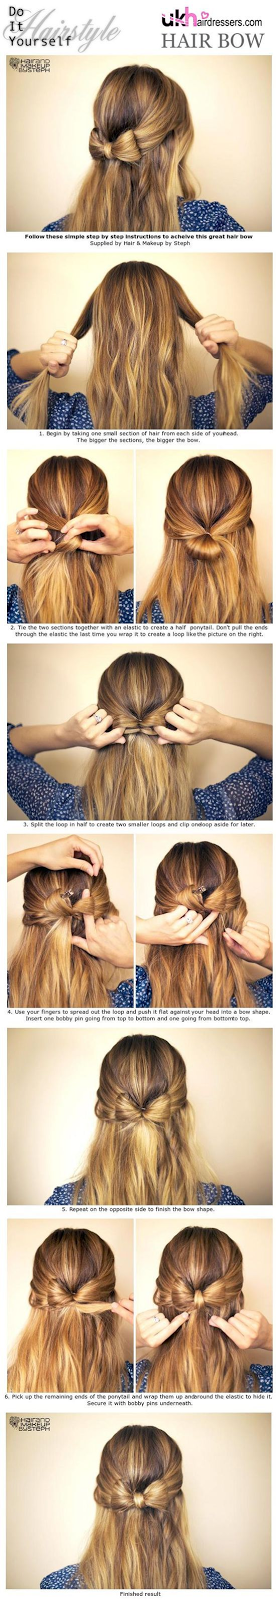 Hairstyle Tutorial: Easy DIY Hair Bow Tutorial